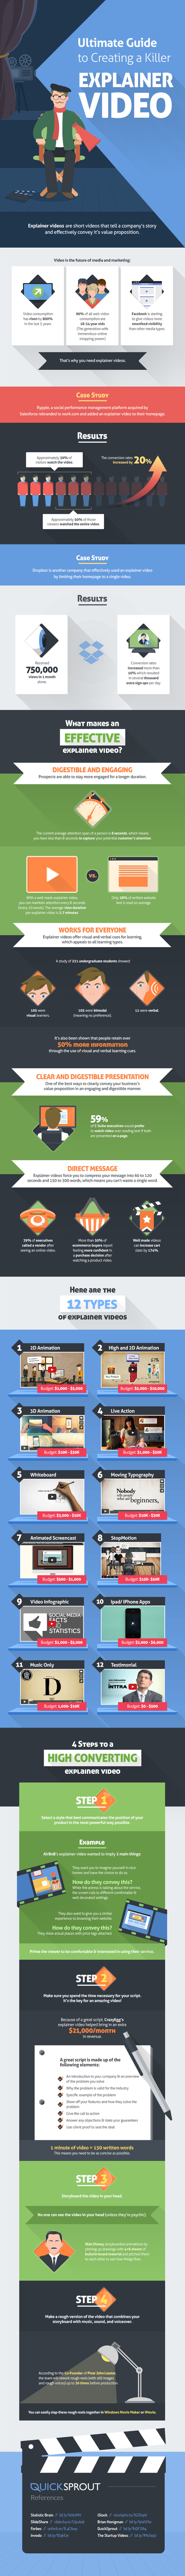 The Ultimate Guide to Creating a Killer Explainer Video | Learning and Design | Scoop.it